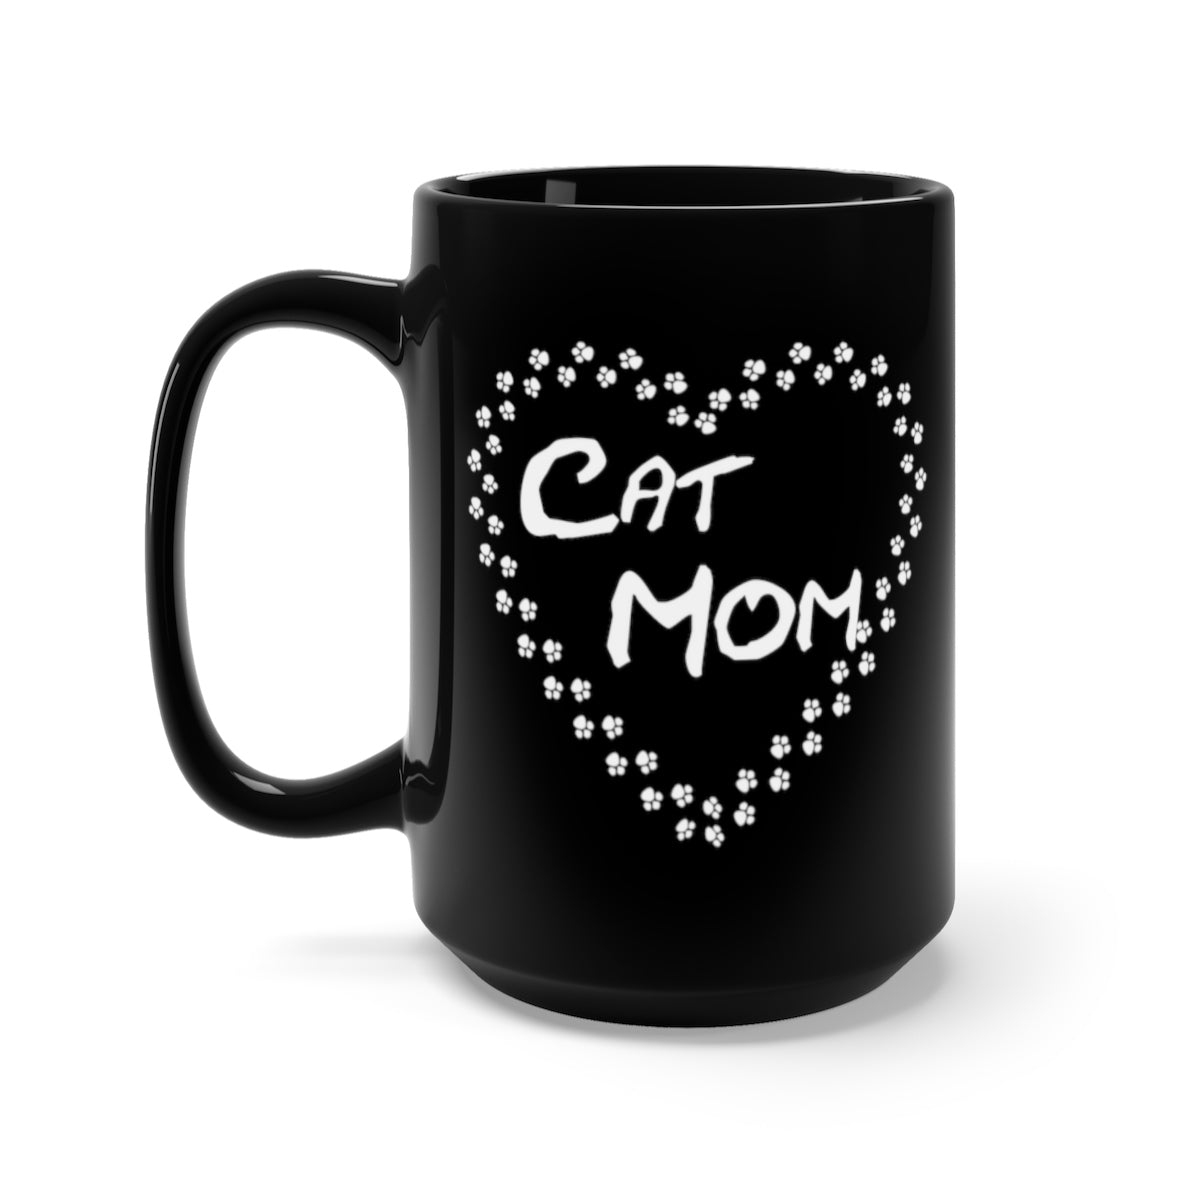 Cat mom paw heart black mug